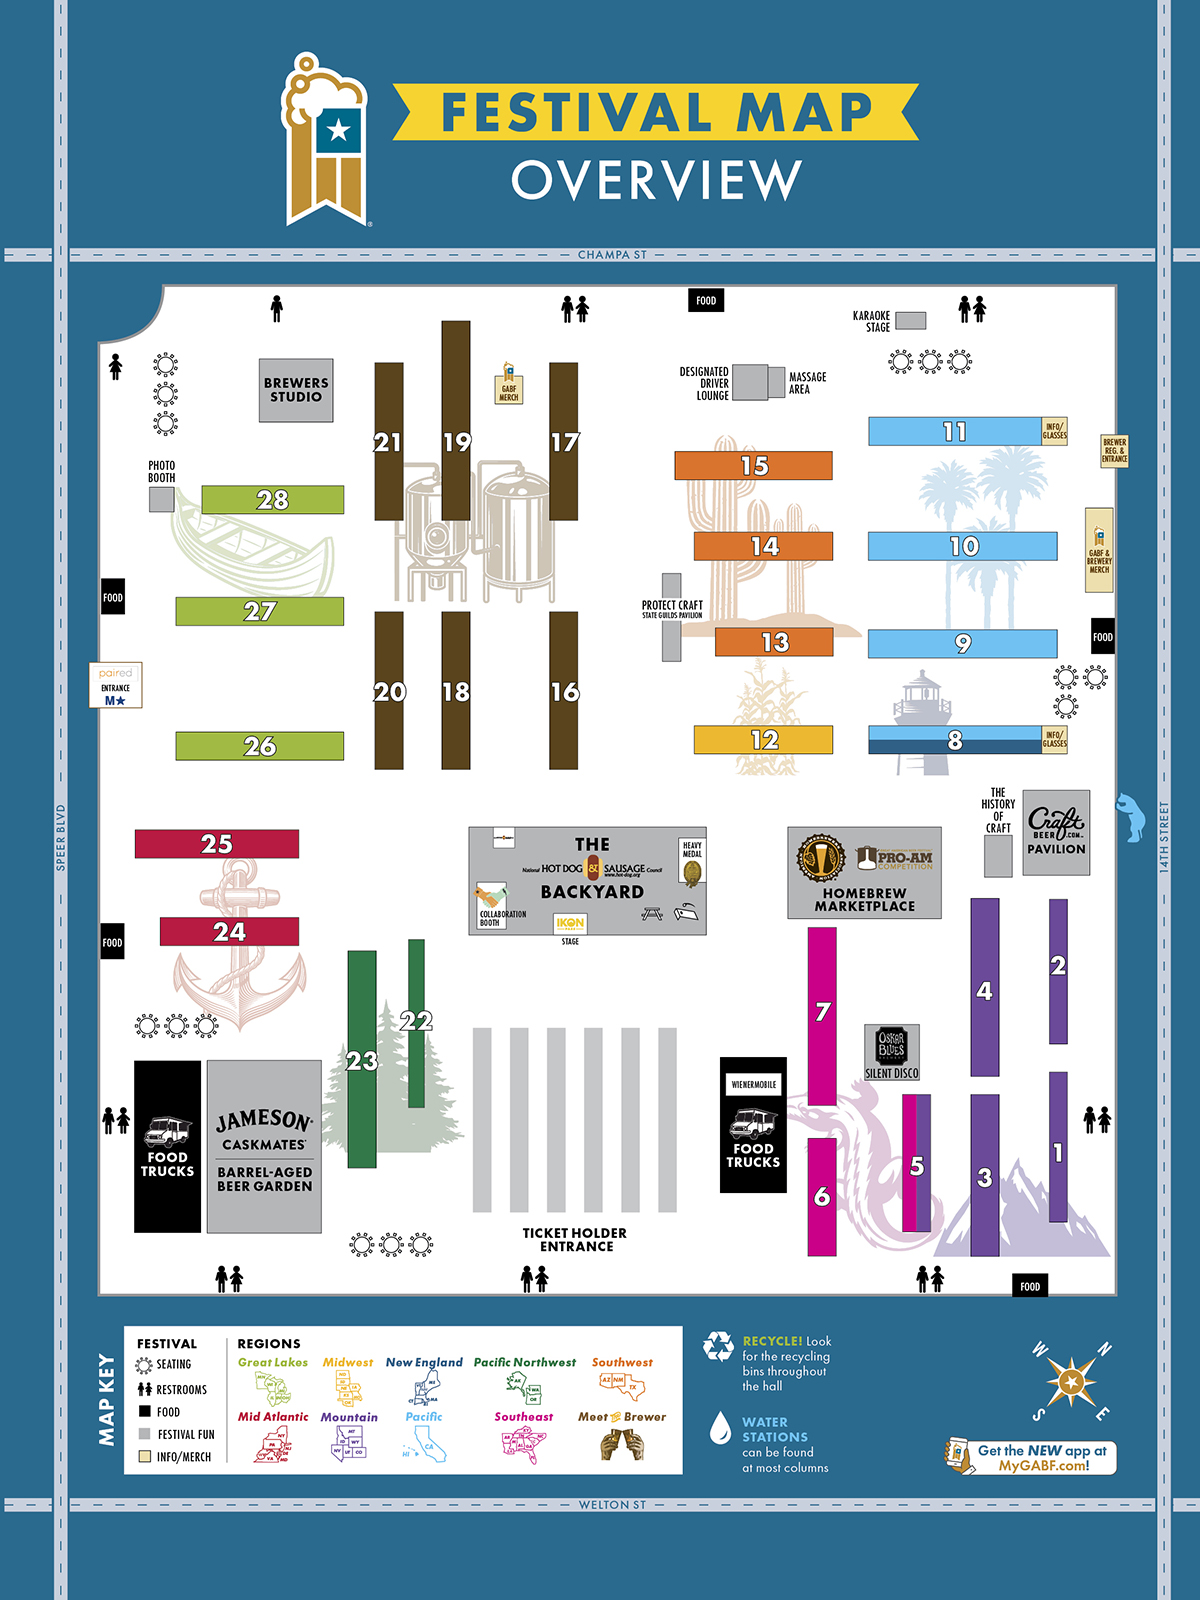 2019 Festival Map - Great American Beer Festival